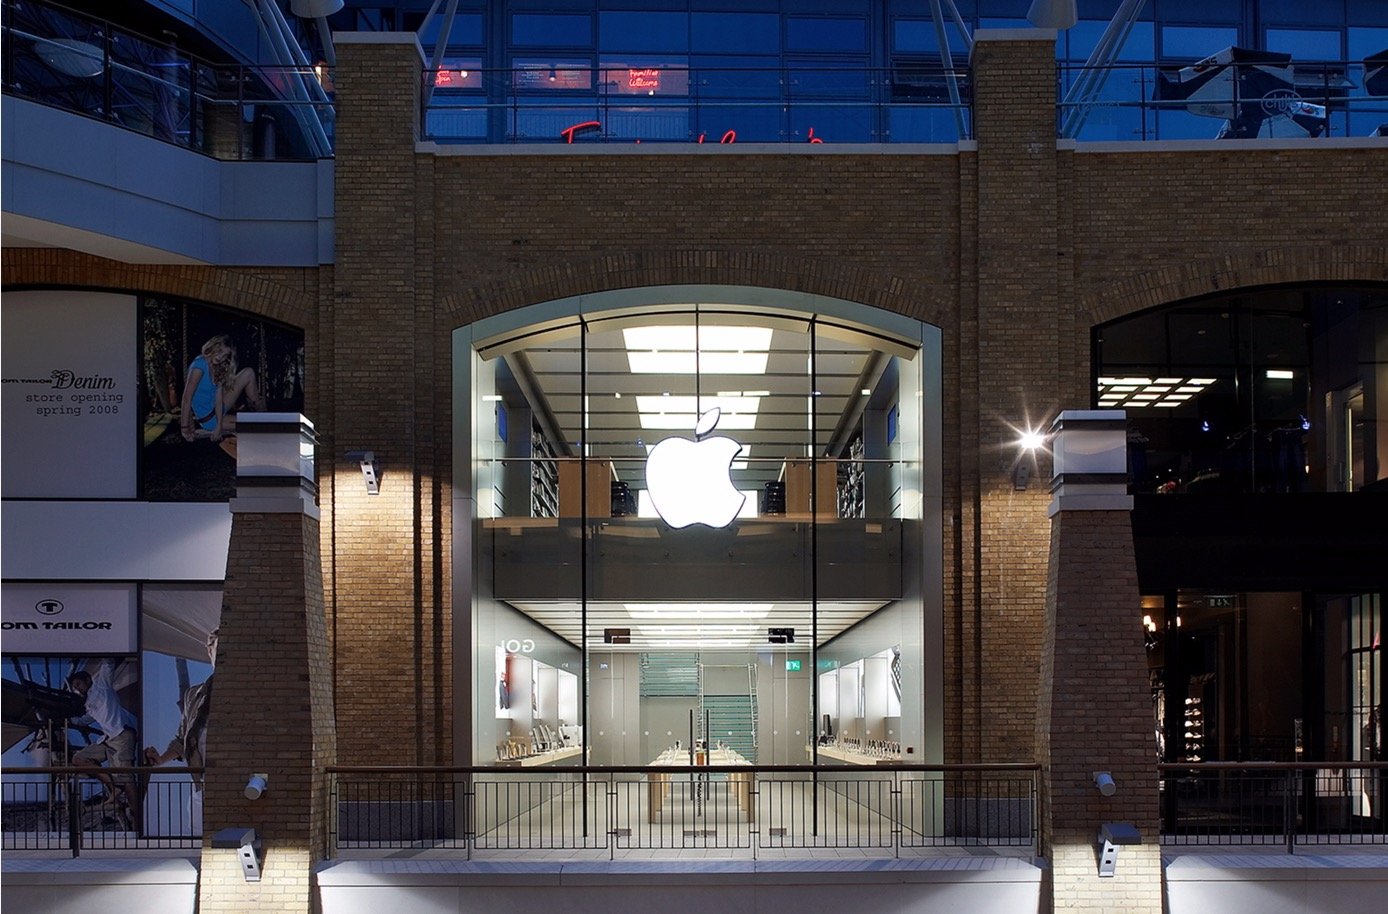 Apple's Victoria Square Store in Belfast Reportedly Undergoes Deep Clean Amid COVID-19 Contamination Fears